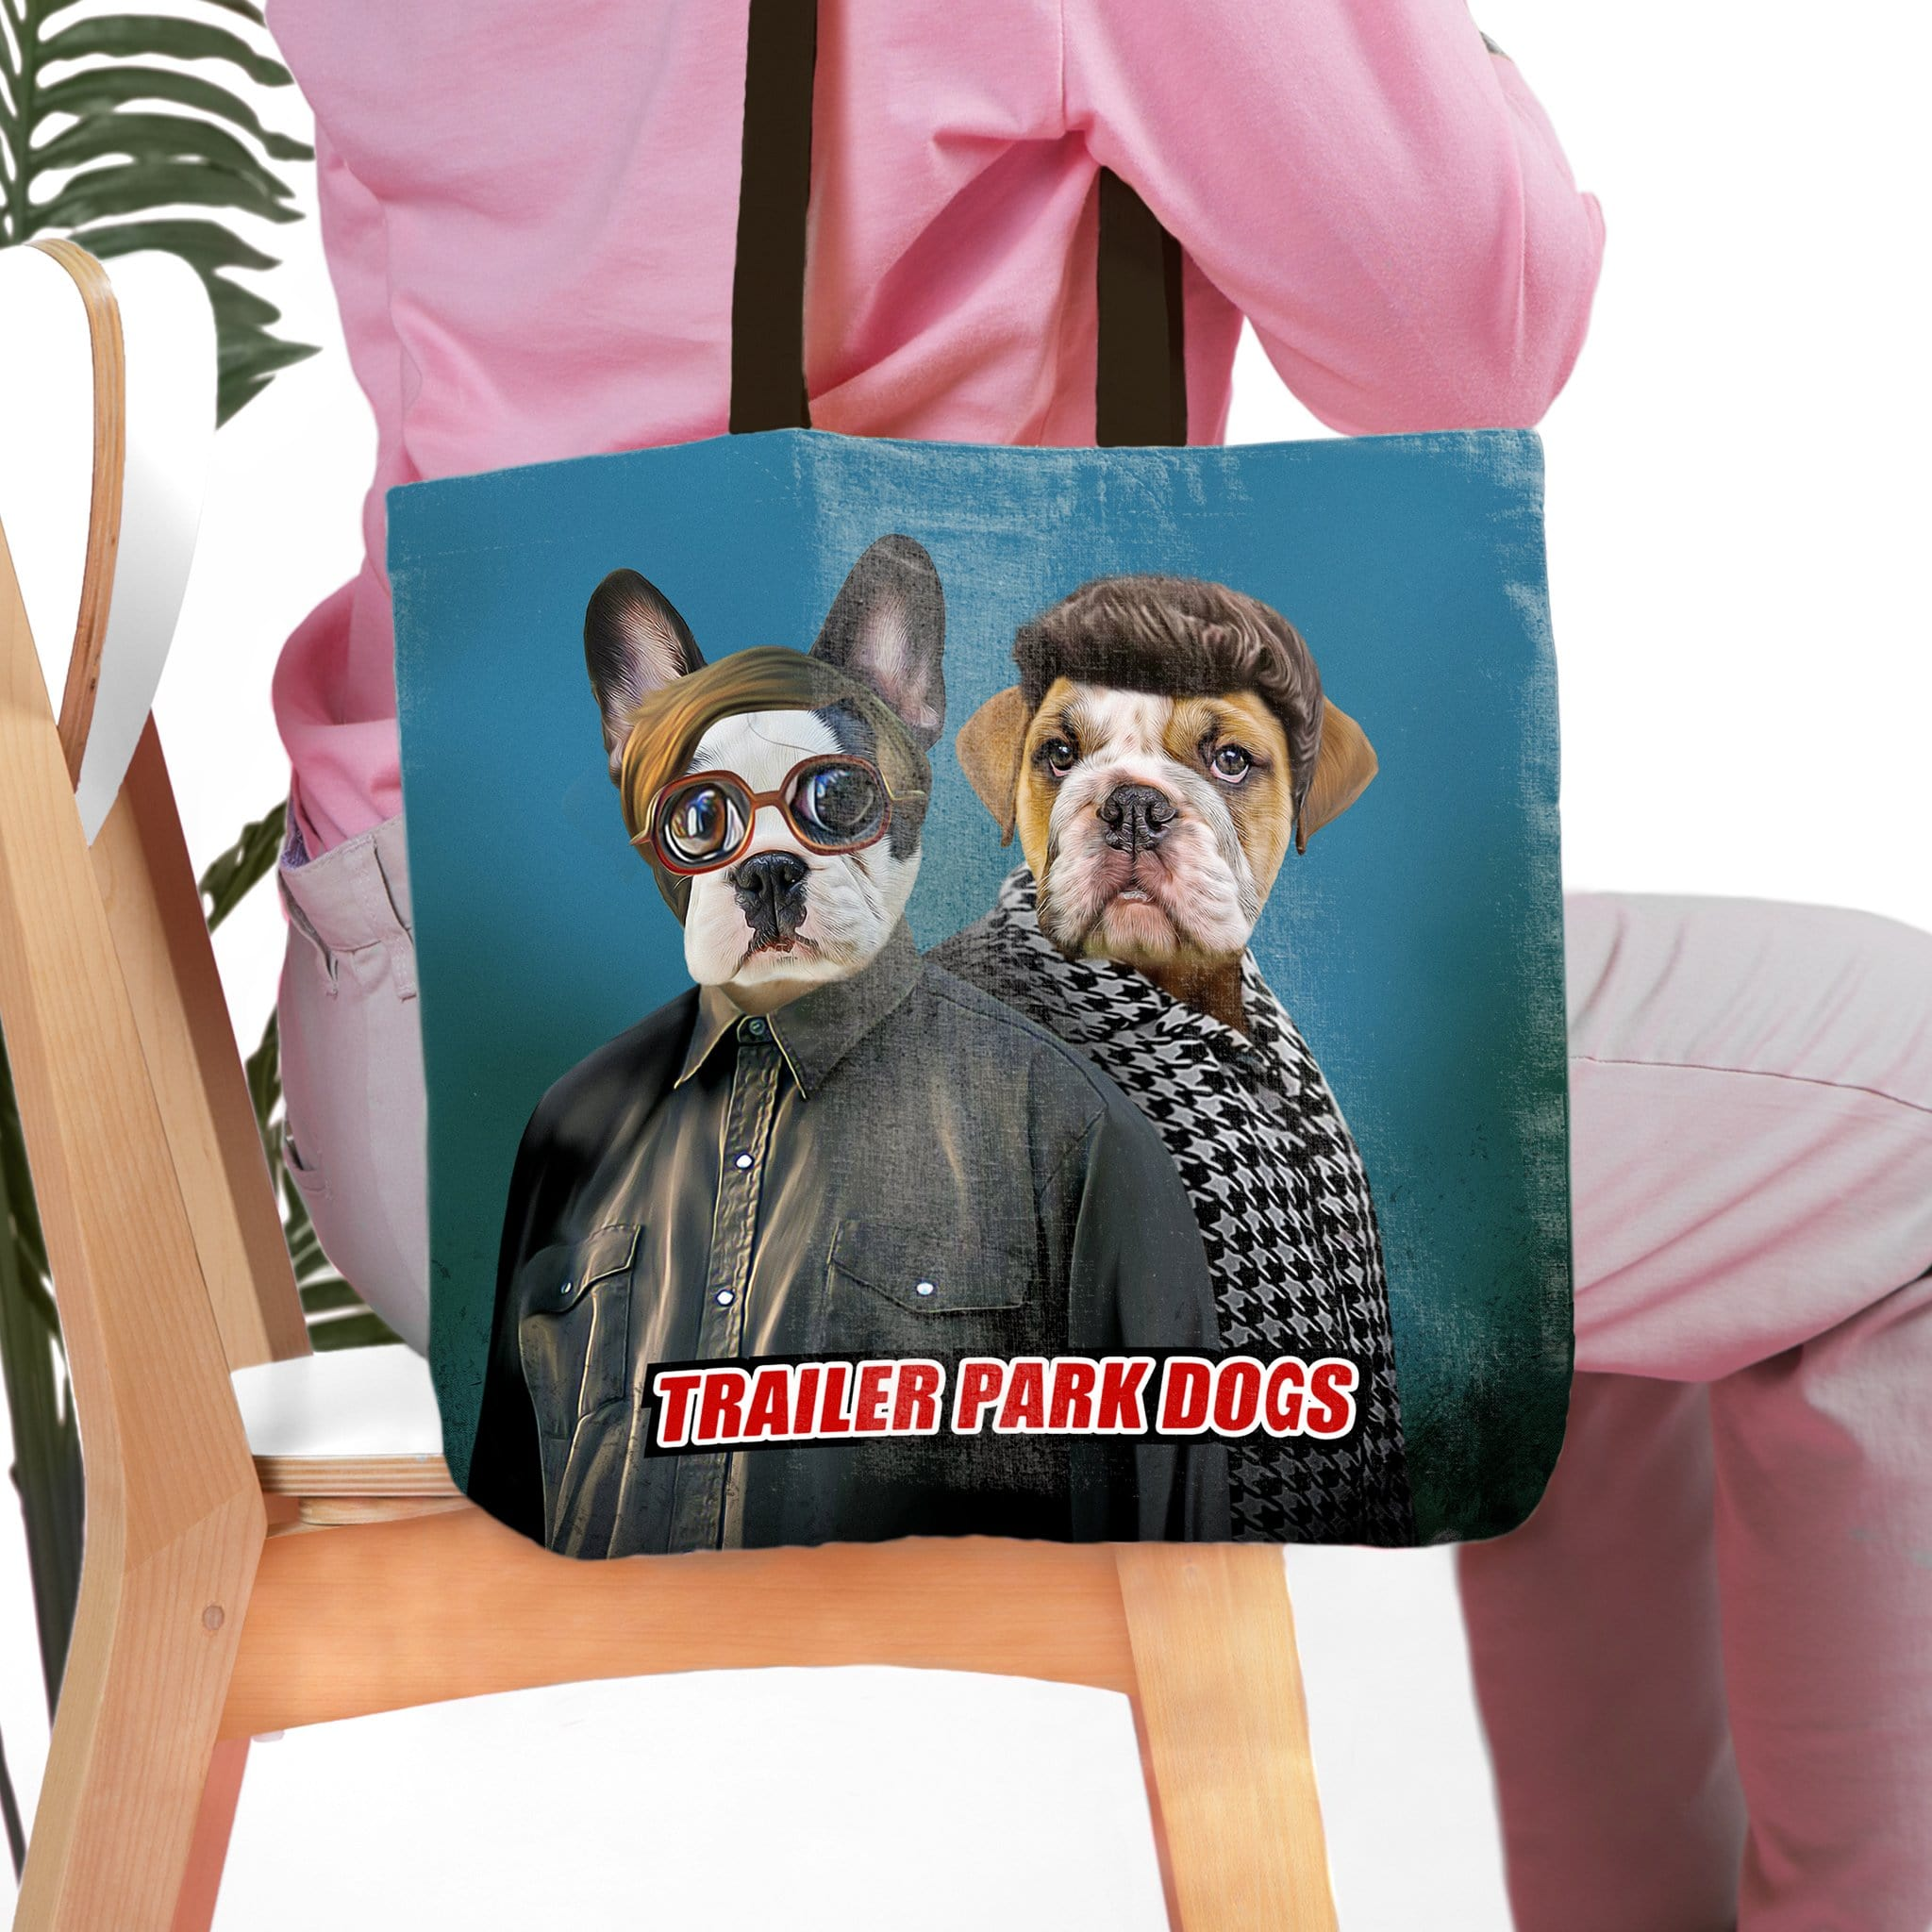 'Trailer Park Dogs 2' Personalized 2 Tote Bag